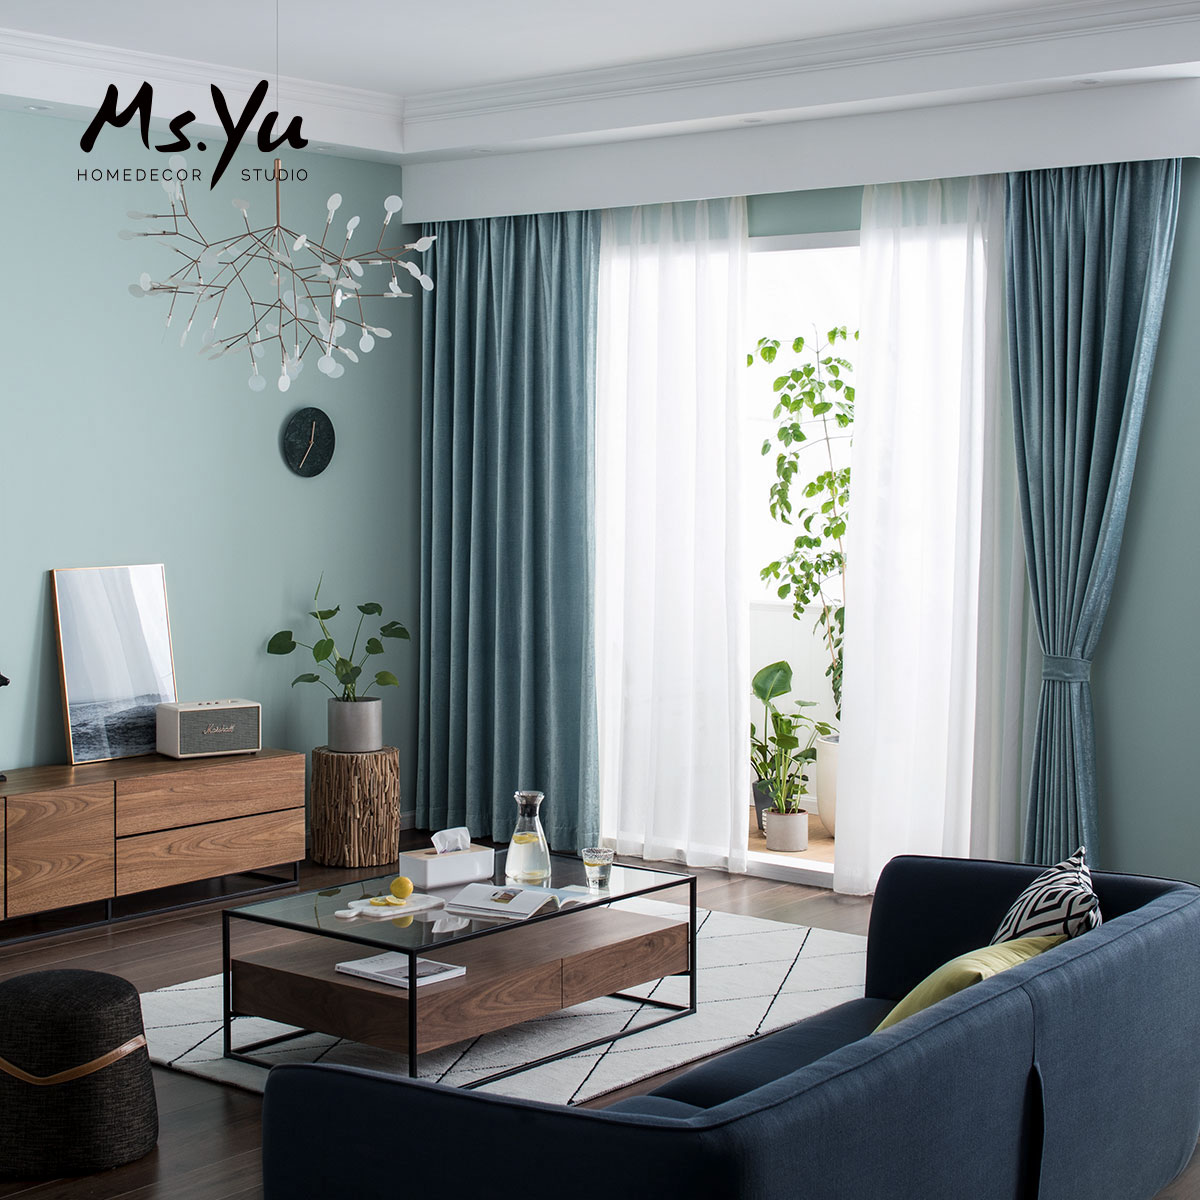 China Blue Curtains Curtains Nordic Lake Blue Bay Window Curtains Miss Yu Soft Design Room Custom Living Room Floor Curtains